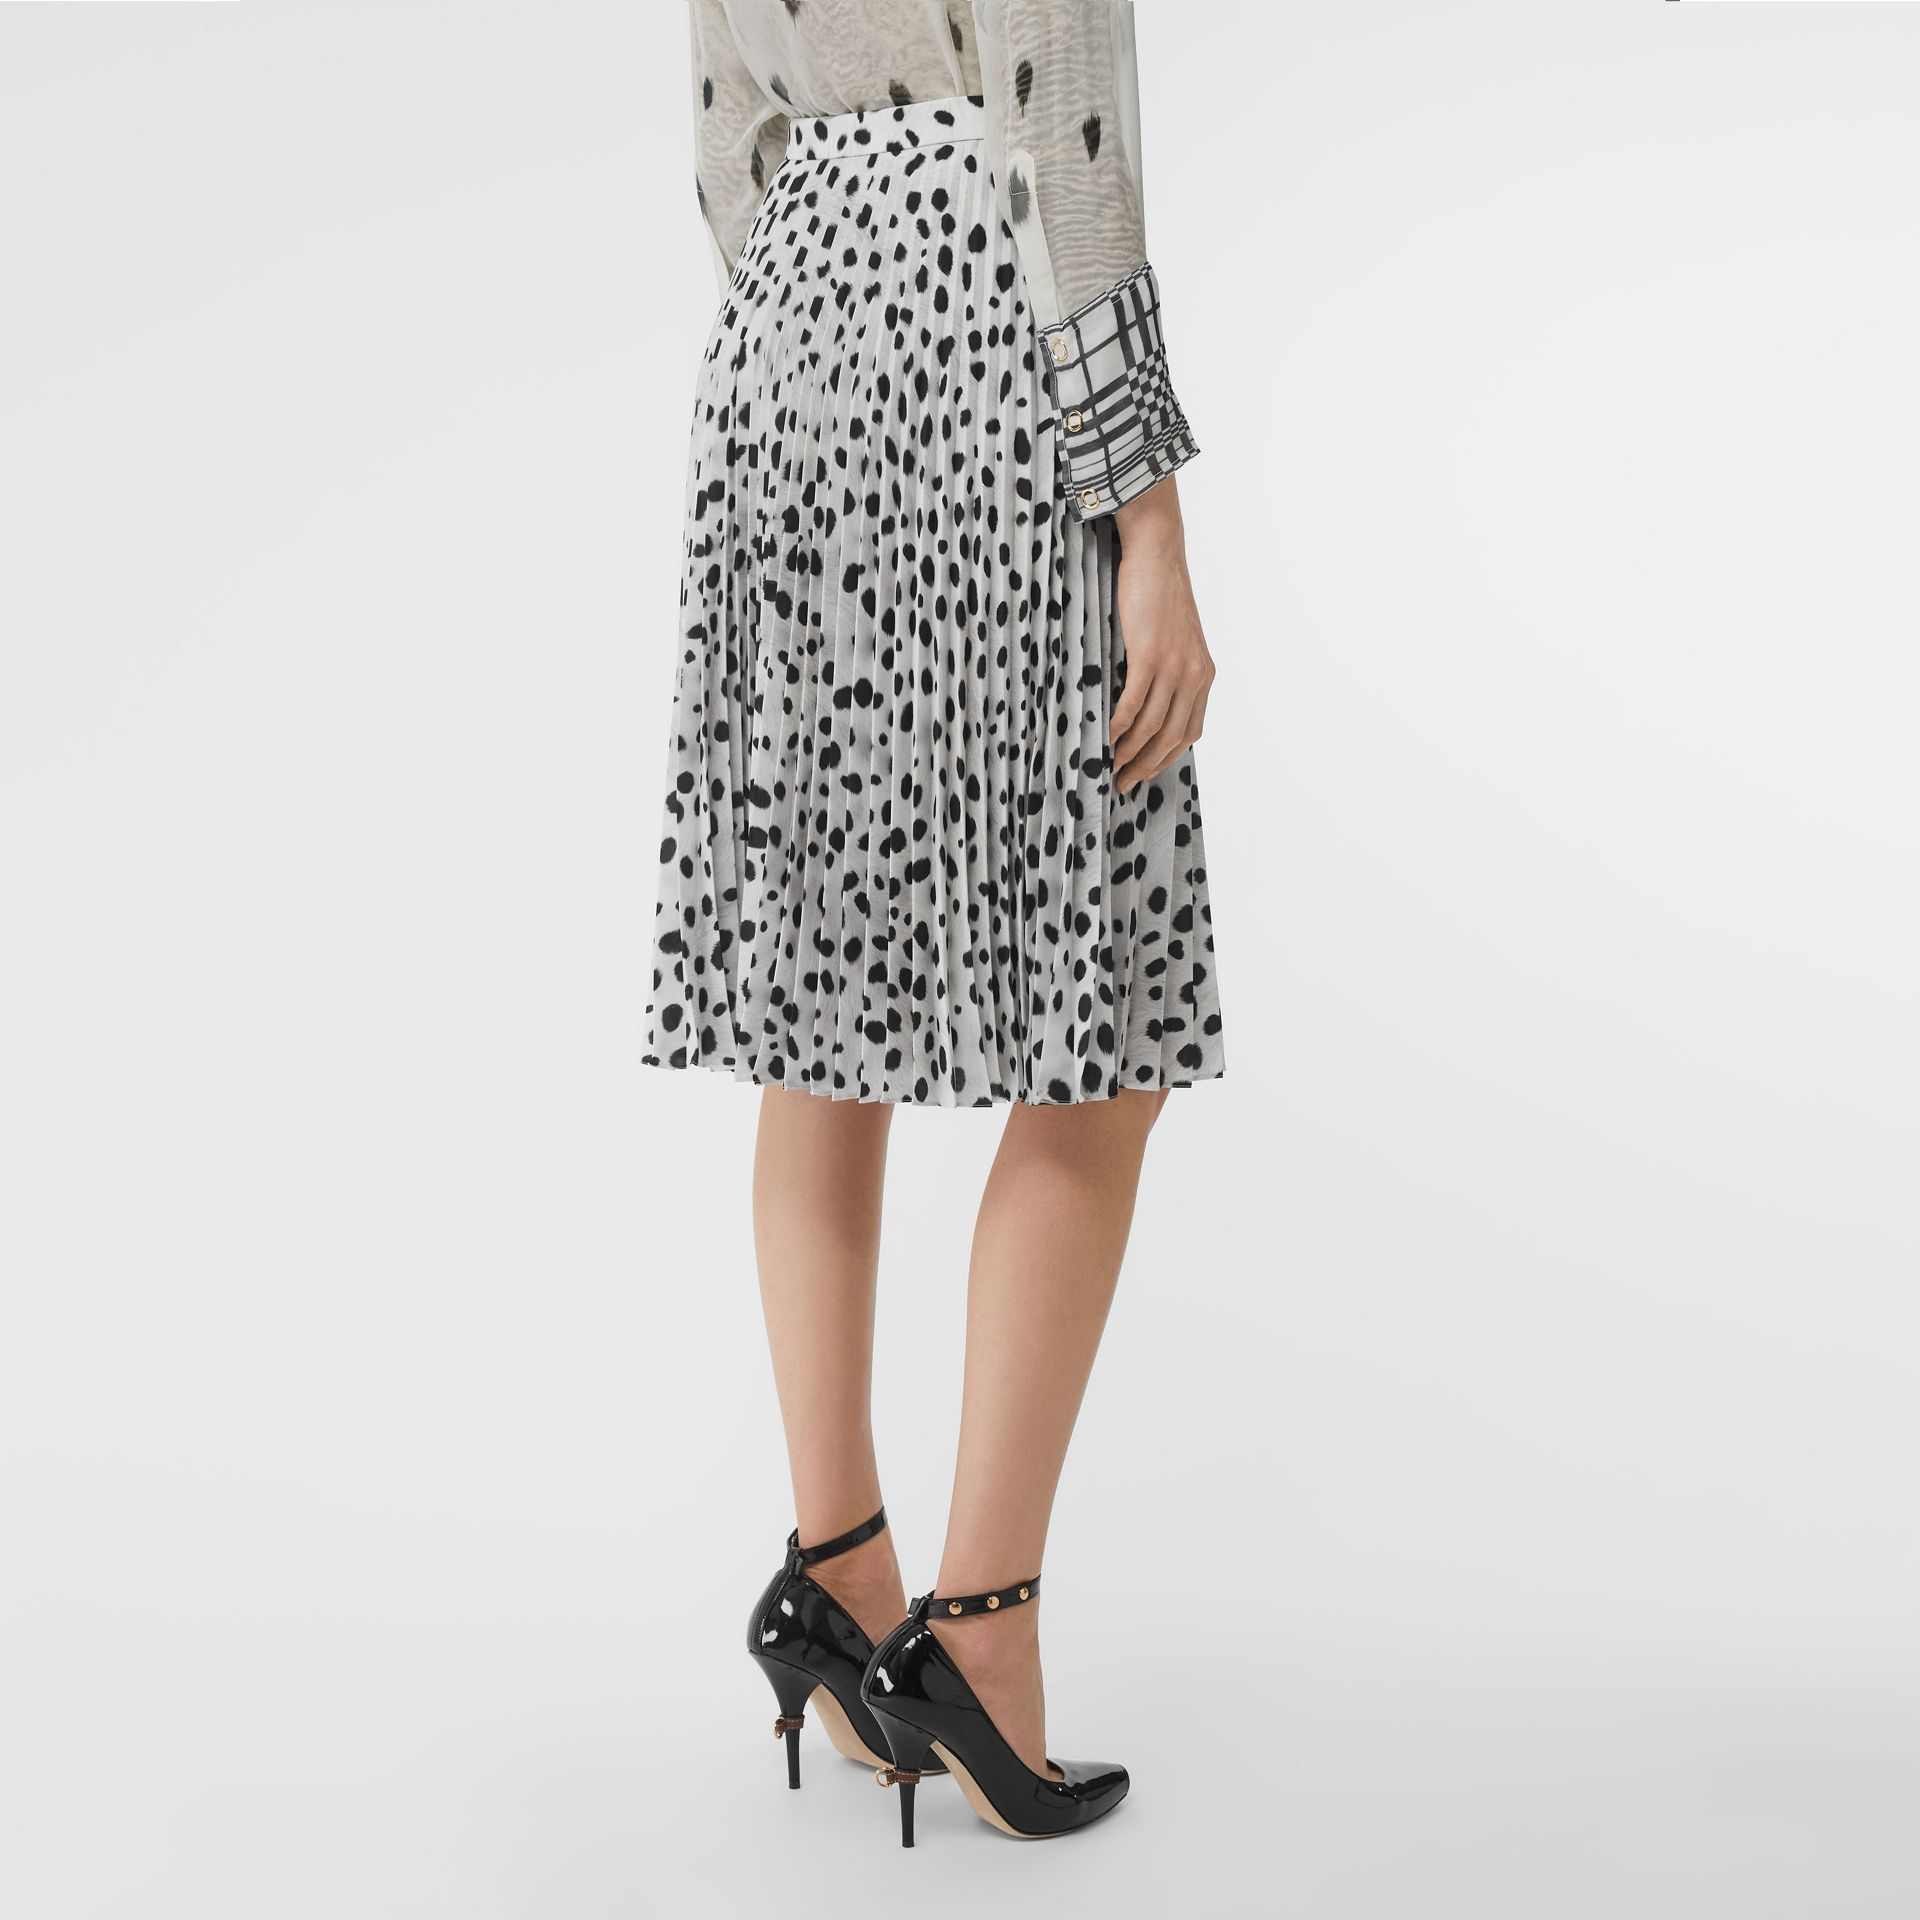 Dalmatian Print Crepe Pleated Skirt in Black/white - Women | Burberry Australia - gallery image 2